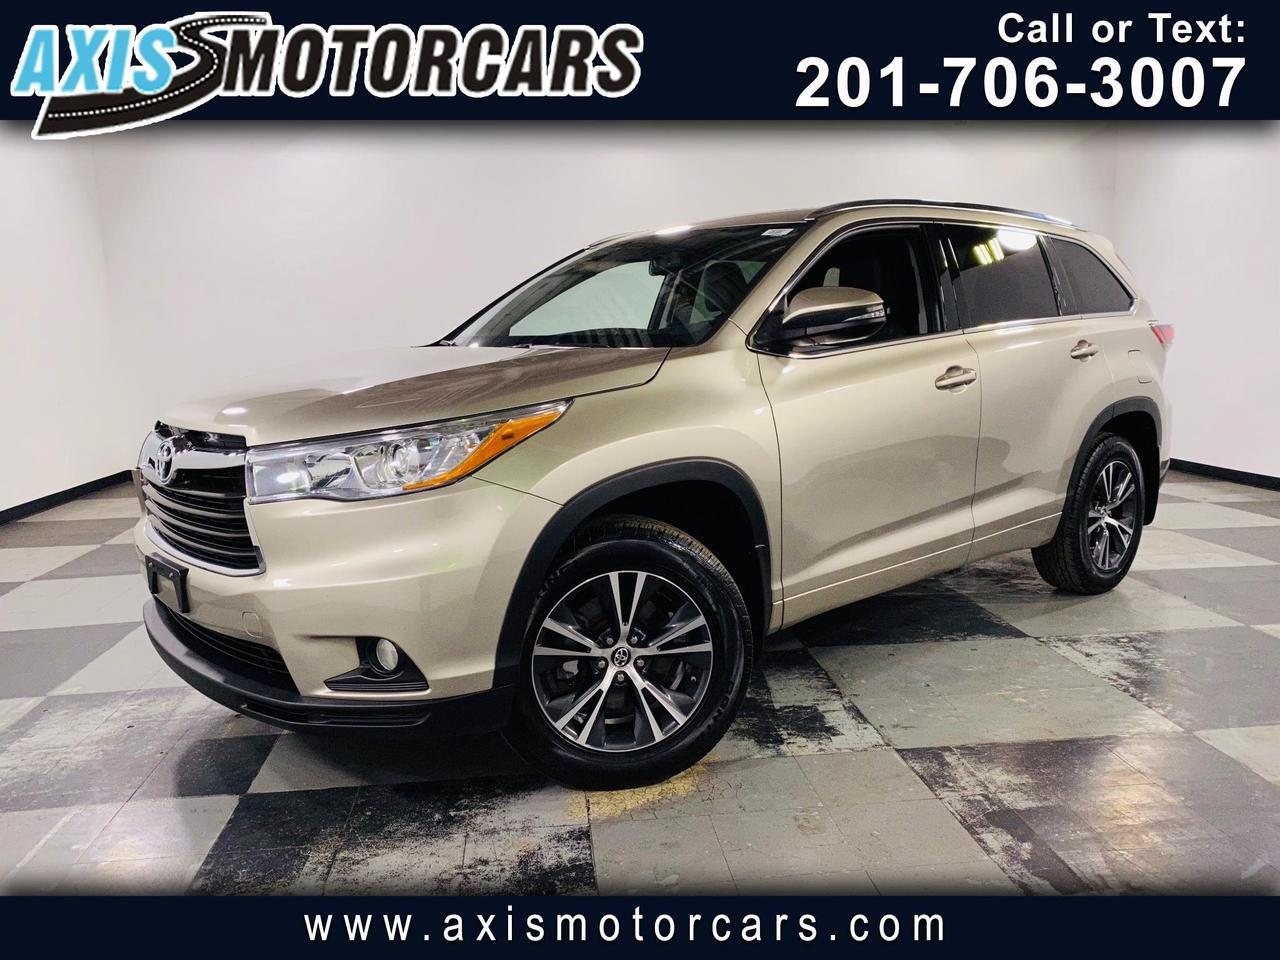 2016 Toyota Highlander XLE w/Navigation Backup Camera 3rd Seat Row Jersey City NJ